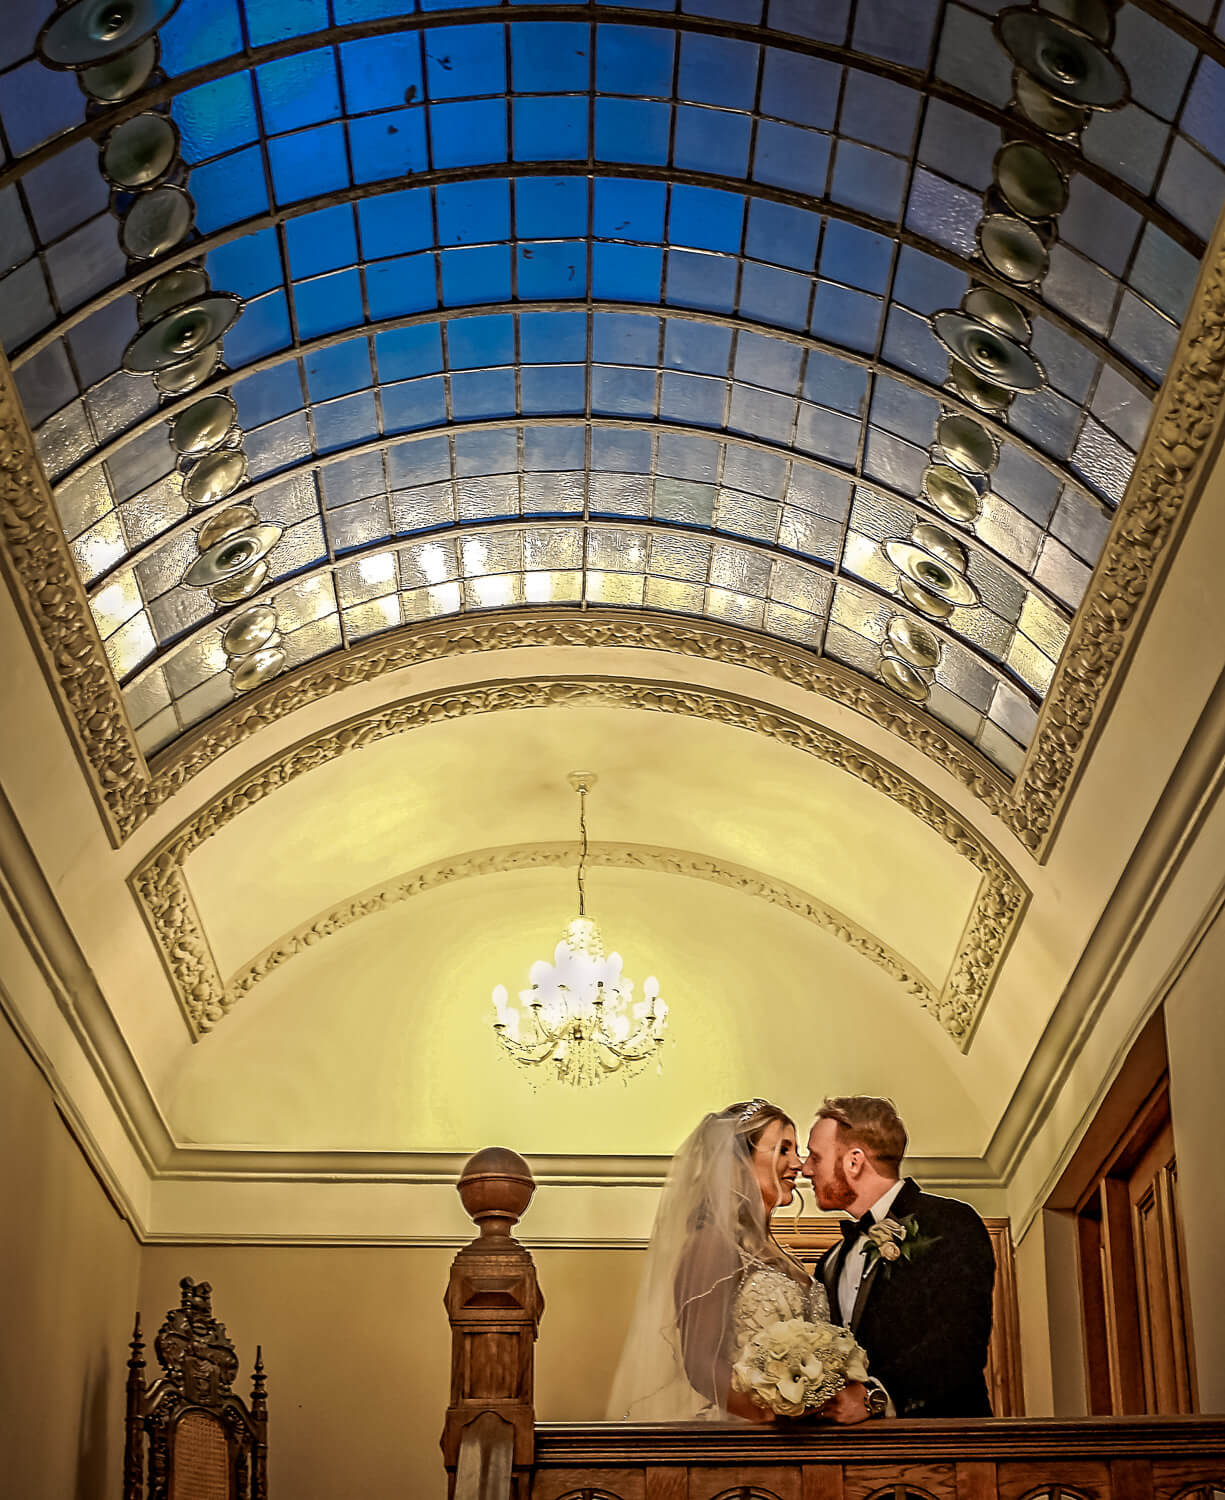 Bride and groom at top of stairs in West Tower with blue skylight